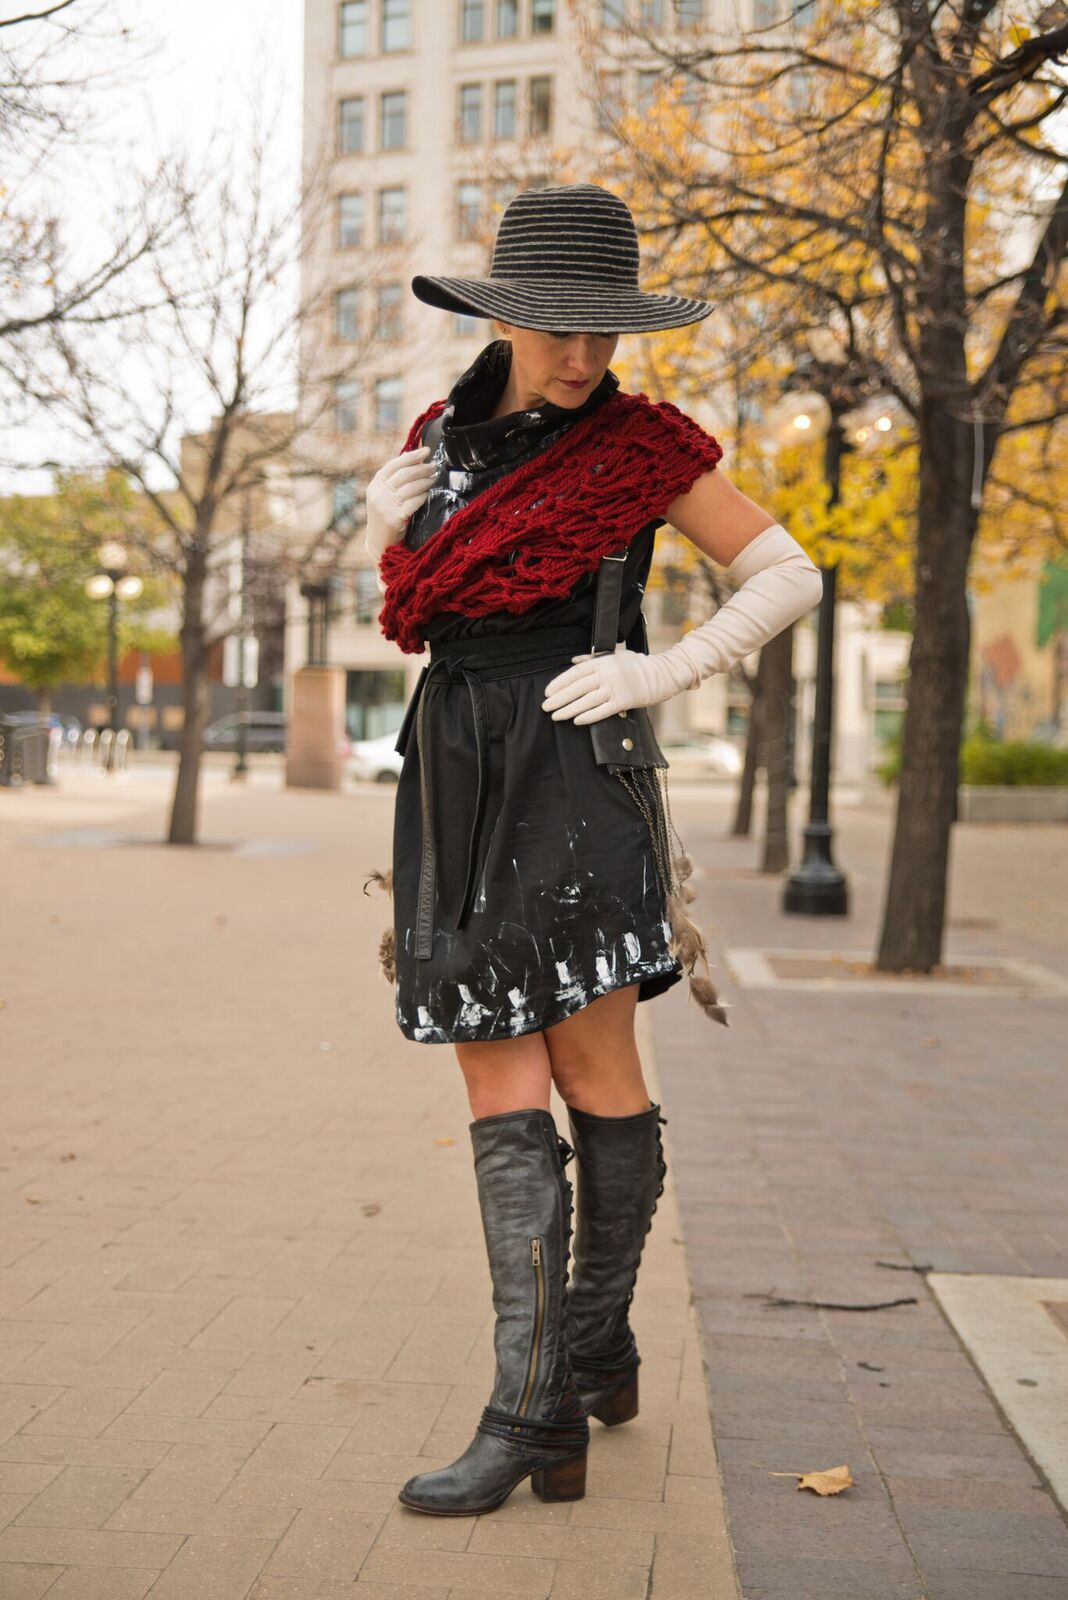 Dress, scarf, and holster by Lennard Taylor. Hat from The Haberdashery. Boots from Rooster shoes.